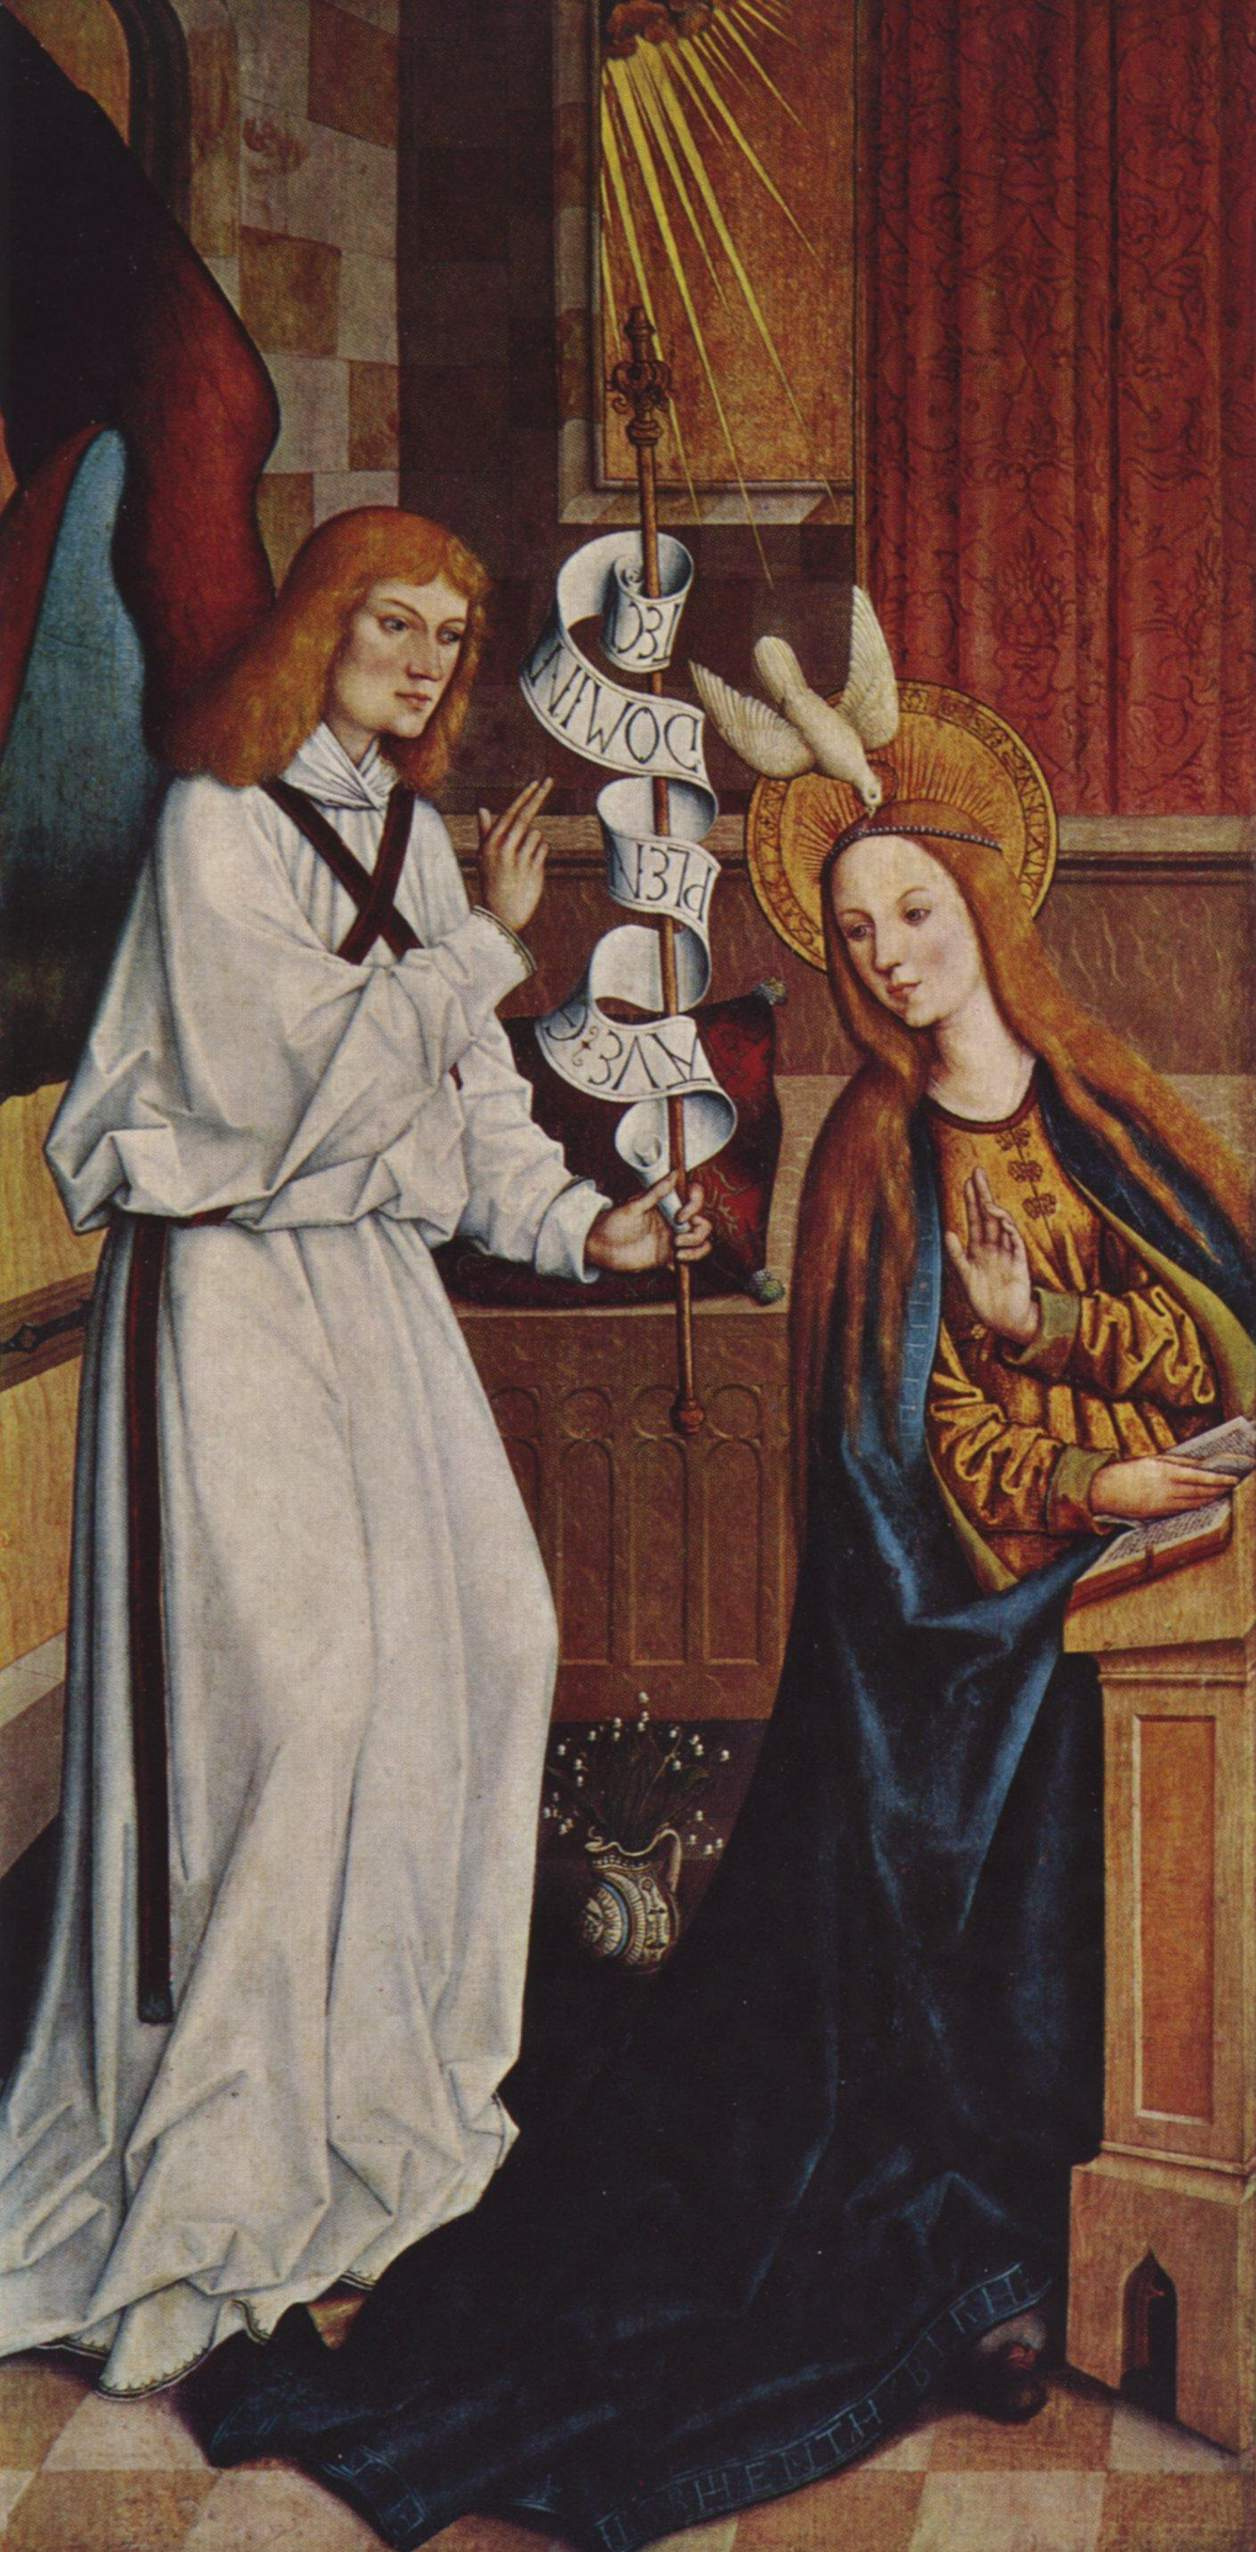 Bartholomew Tzeitblom. Shahski the altar, the scene from the inner side of the left wing: the Annunciation of Mary